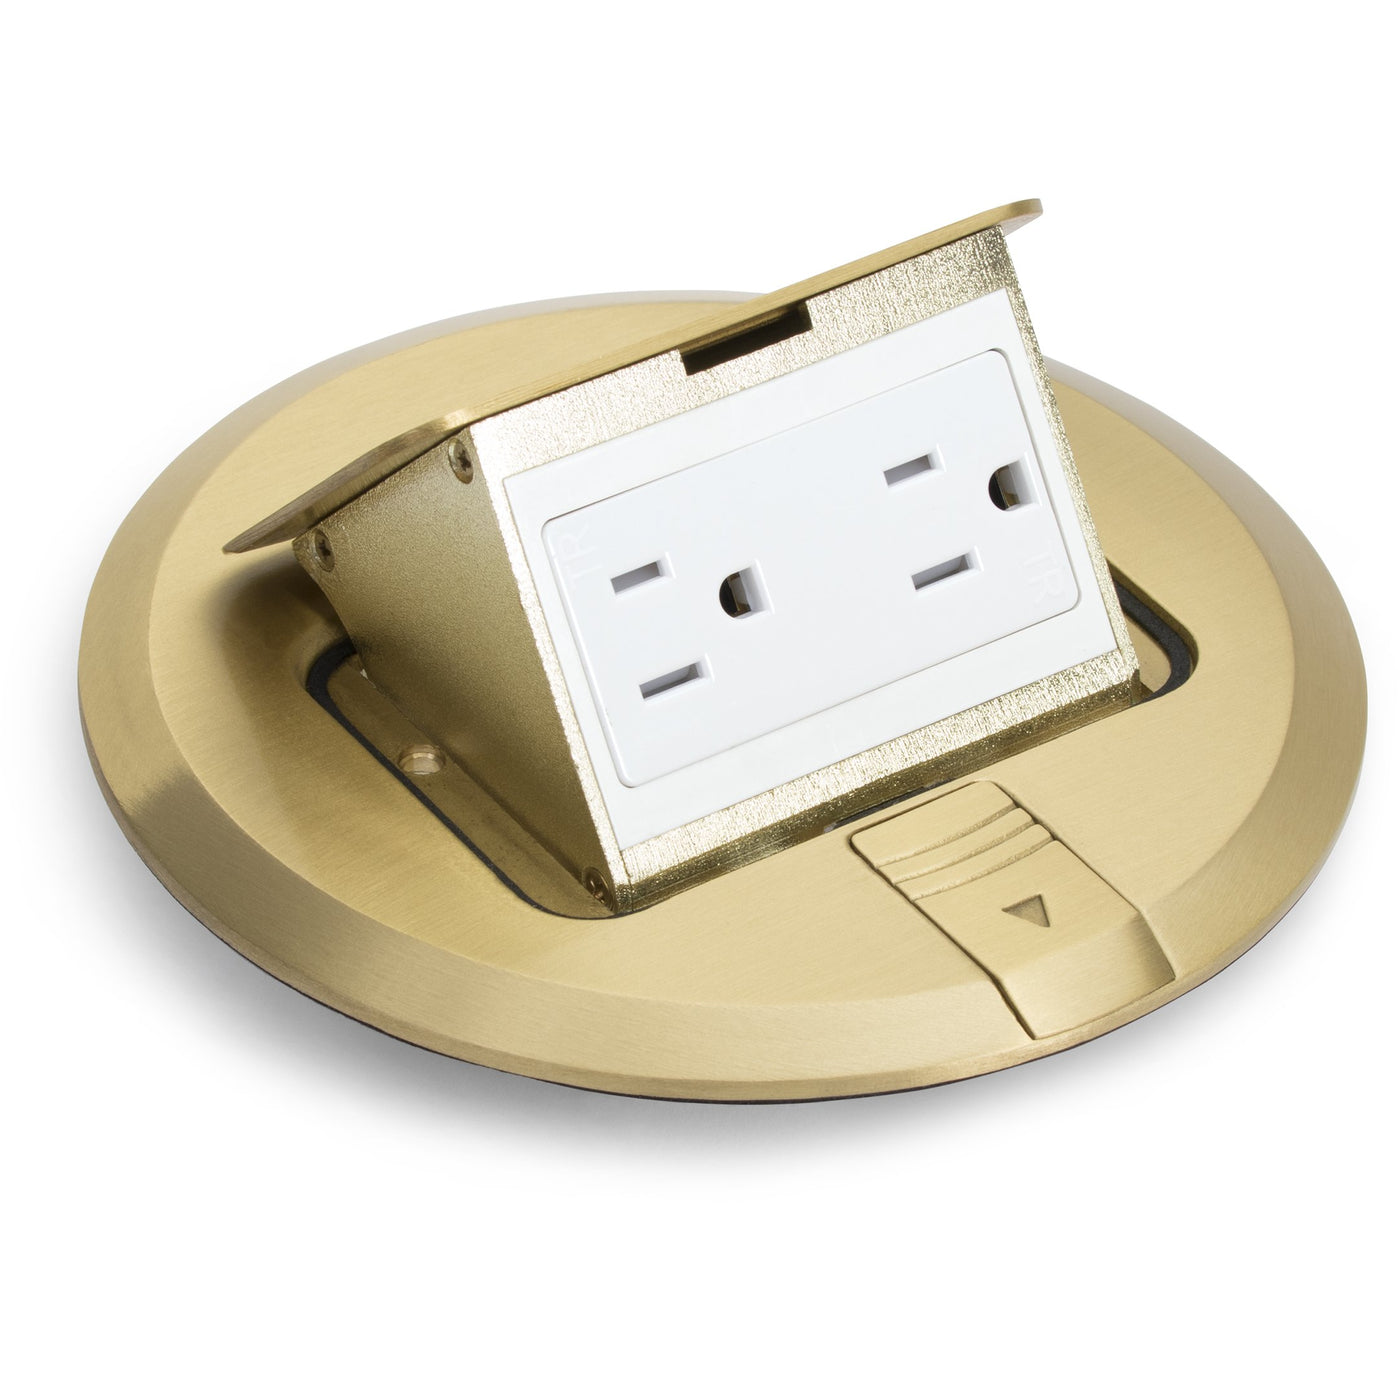 Lew Electric Pufp Bd Pop Up Floor Box 15a Outlet No Box Brass Floor Box Outlet